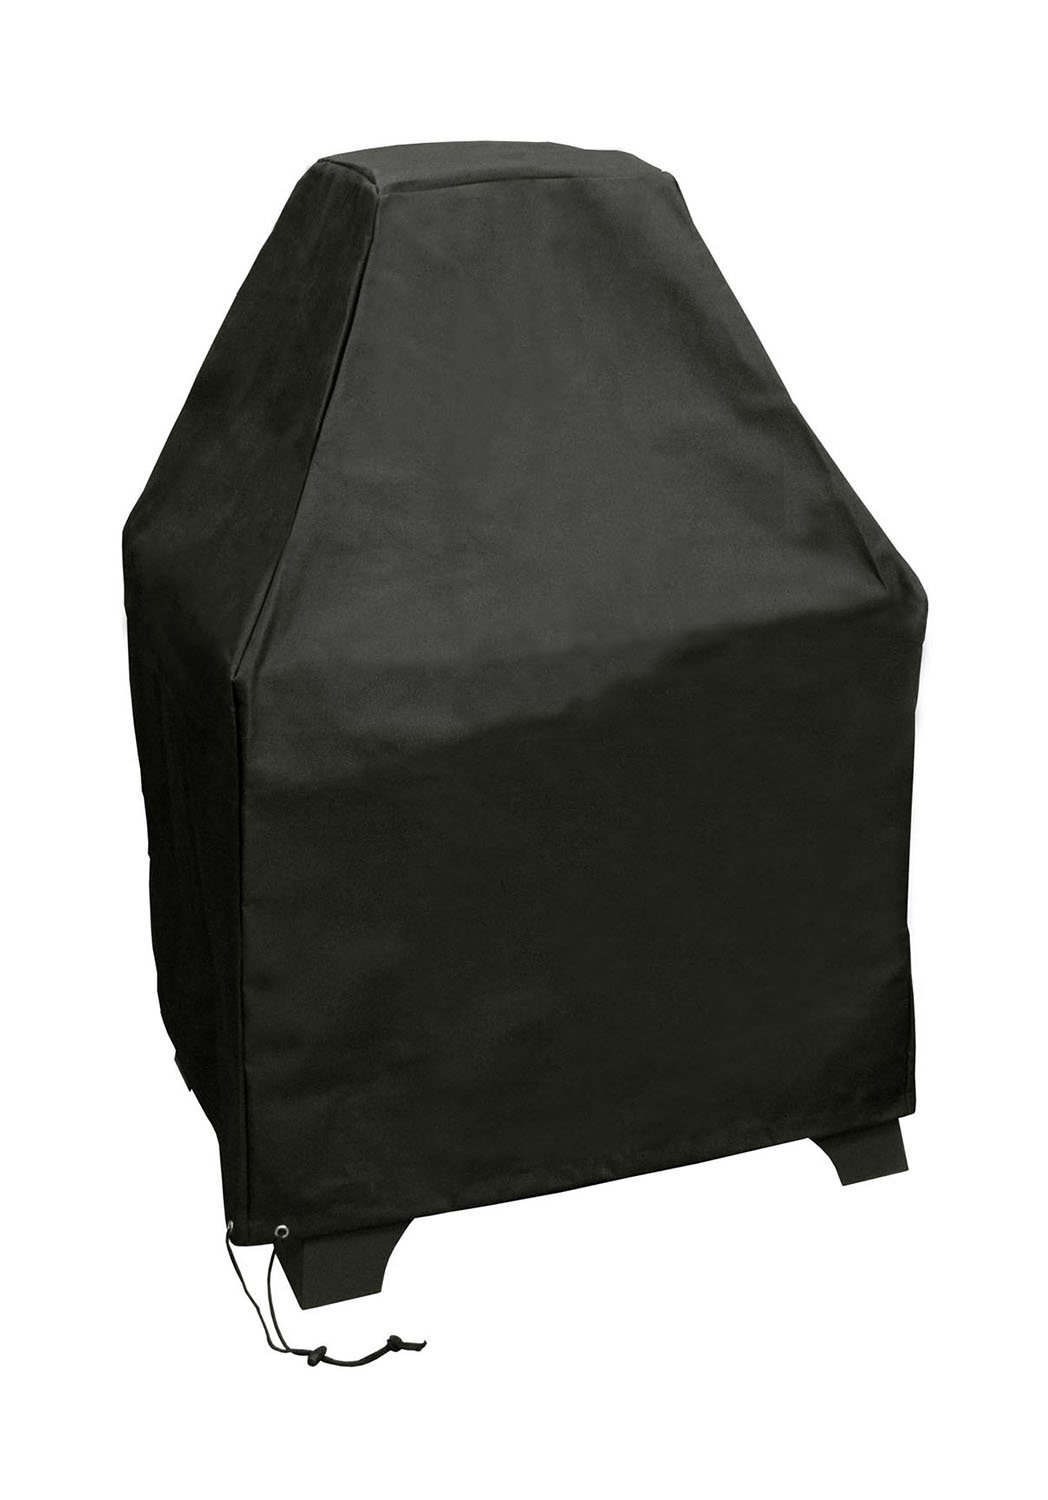 amazon com redford outdoor fireplace cover home u0026 kitchen